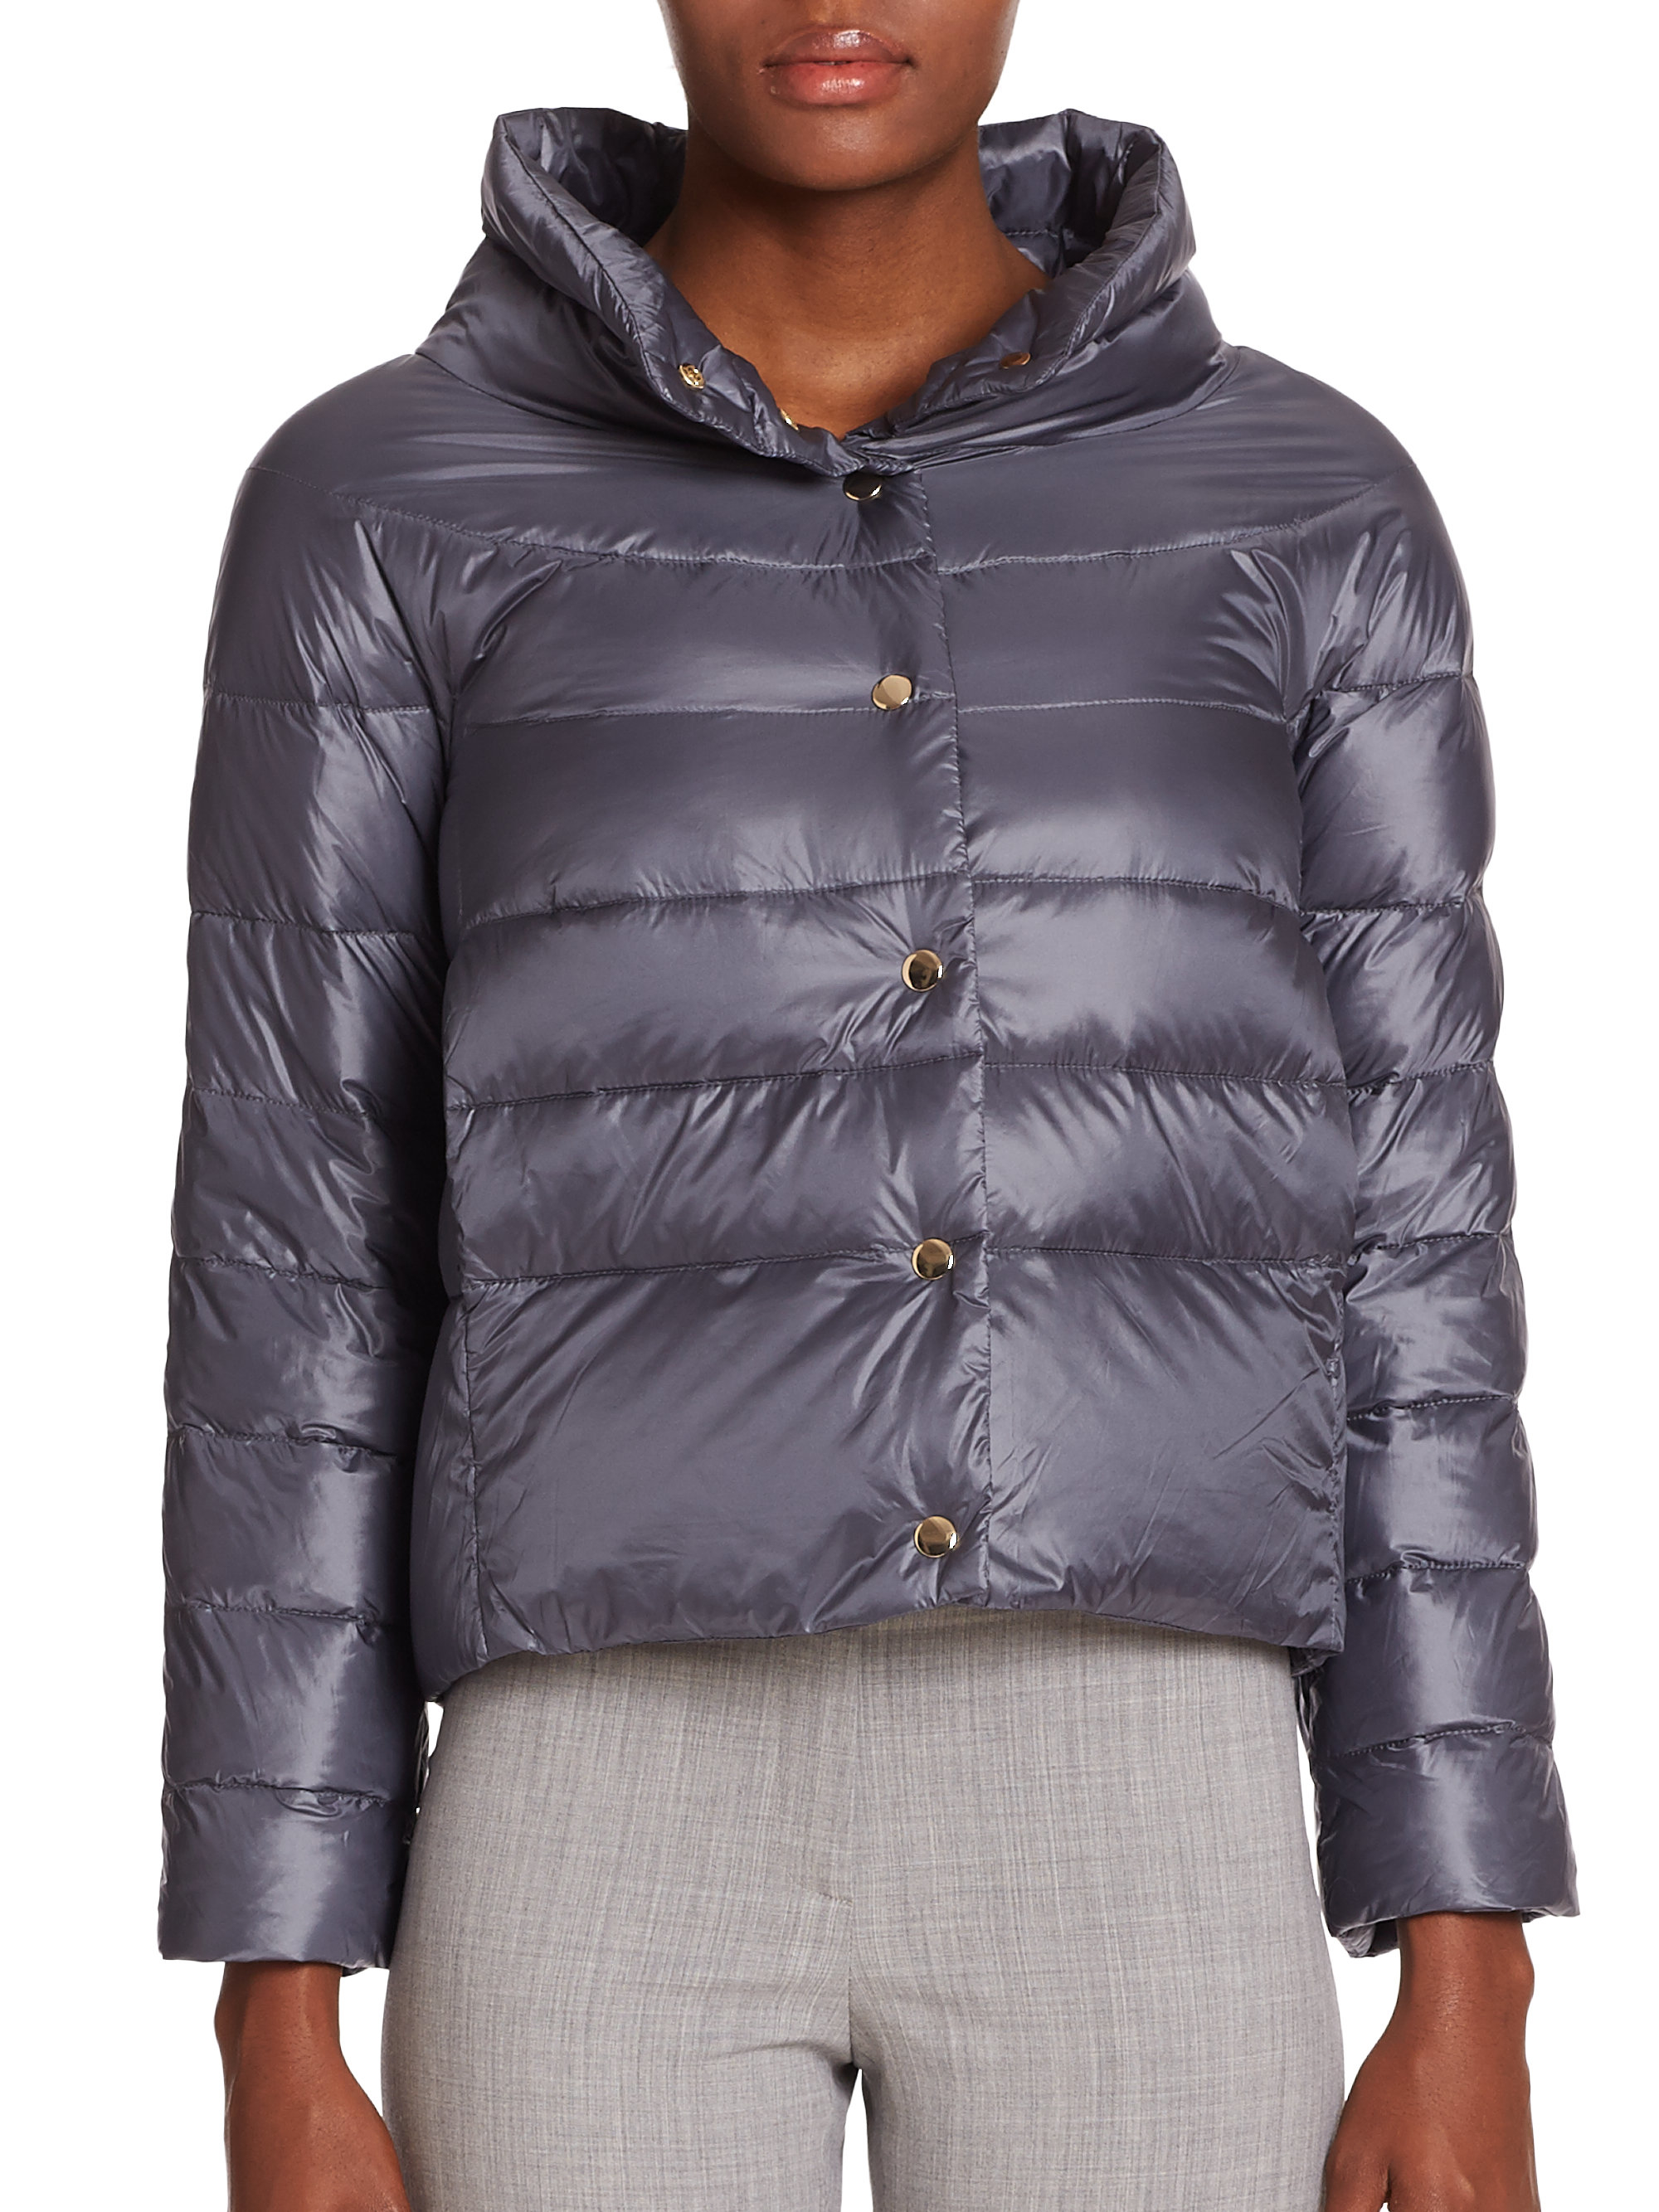 COATS & JACKETS - Down jackets PESERICO With Paypal Sale Online zBlWMW